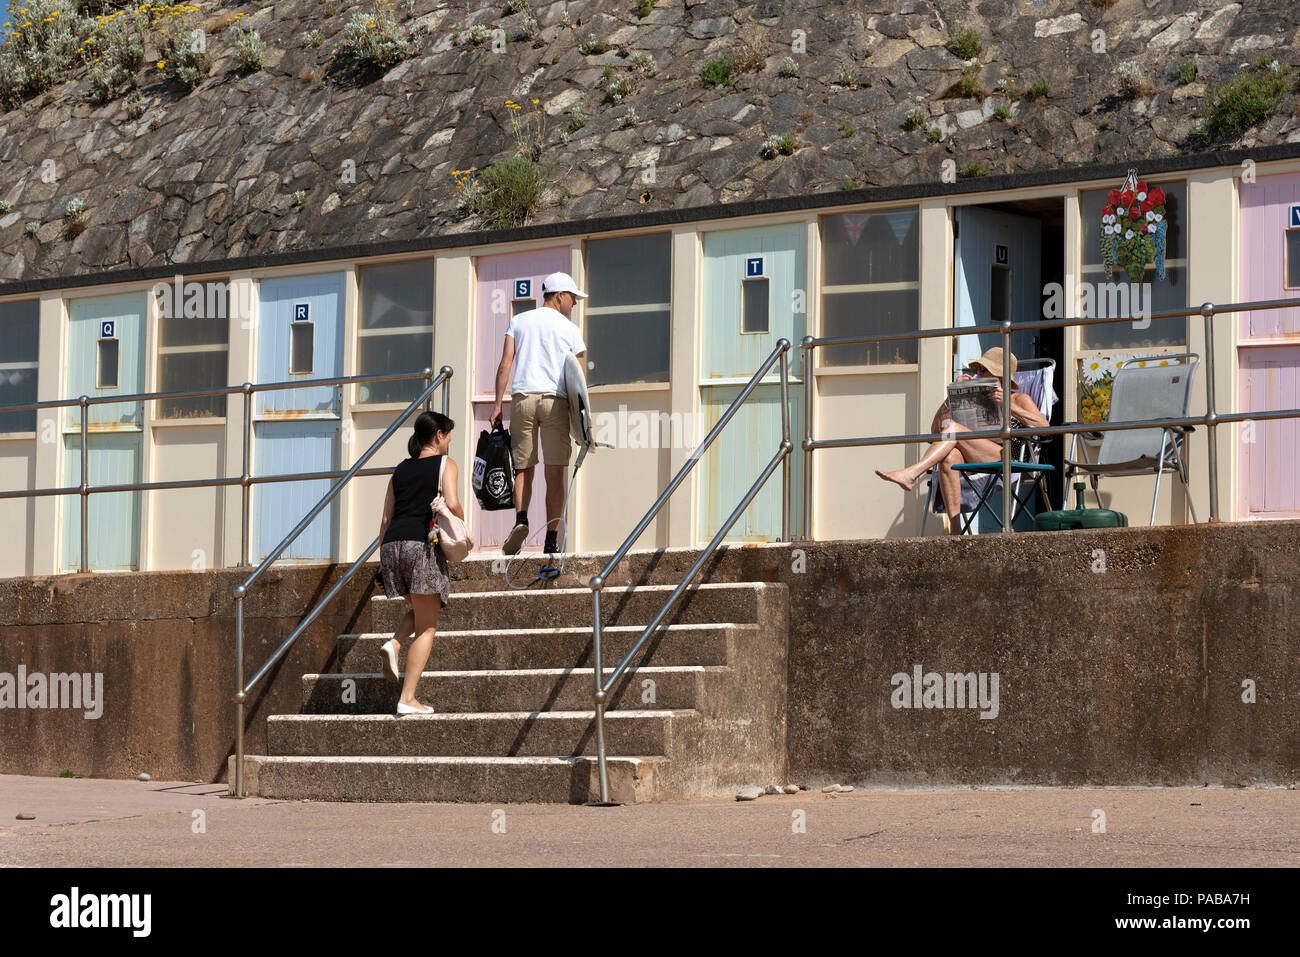 On Board Facilities Stock Photos Images Jacobs Ladder Printed Circuit Beach At Sidmouth A Seaside Resort In East Devon England Uk Changing